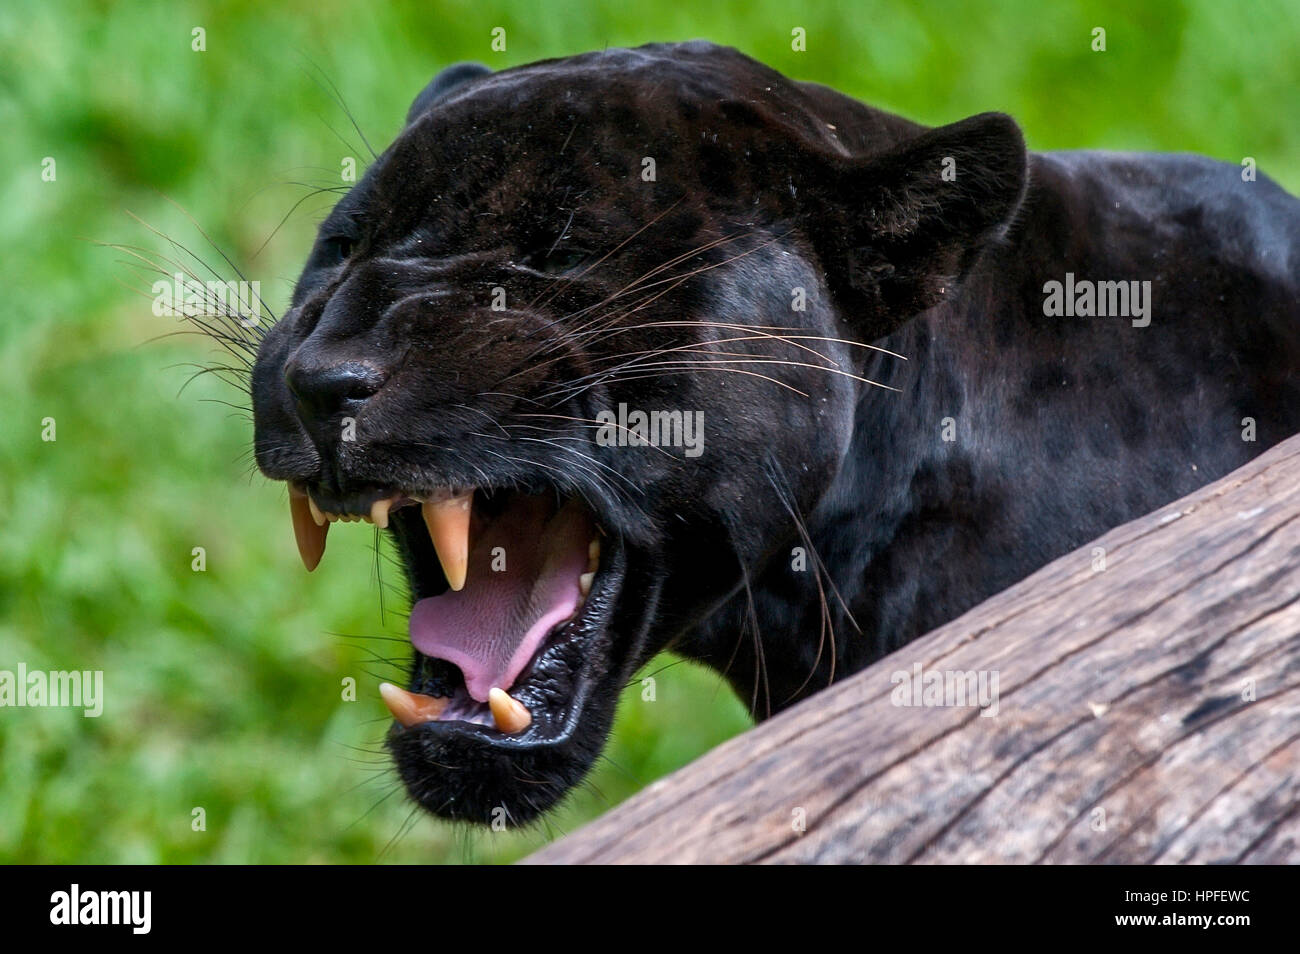 Male Black jaguar (Panthera onca), also called Panther, is a melanic variation of the jaguar. It's kind of carnivorous Stock Photo